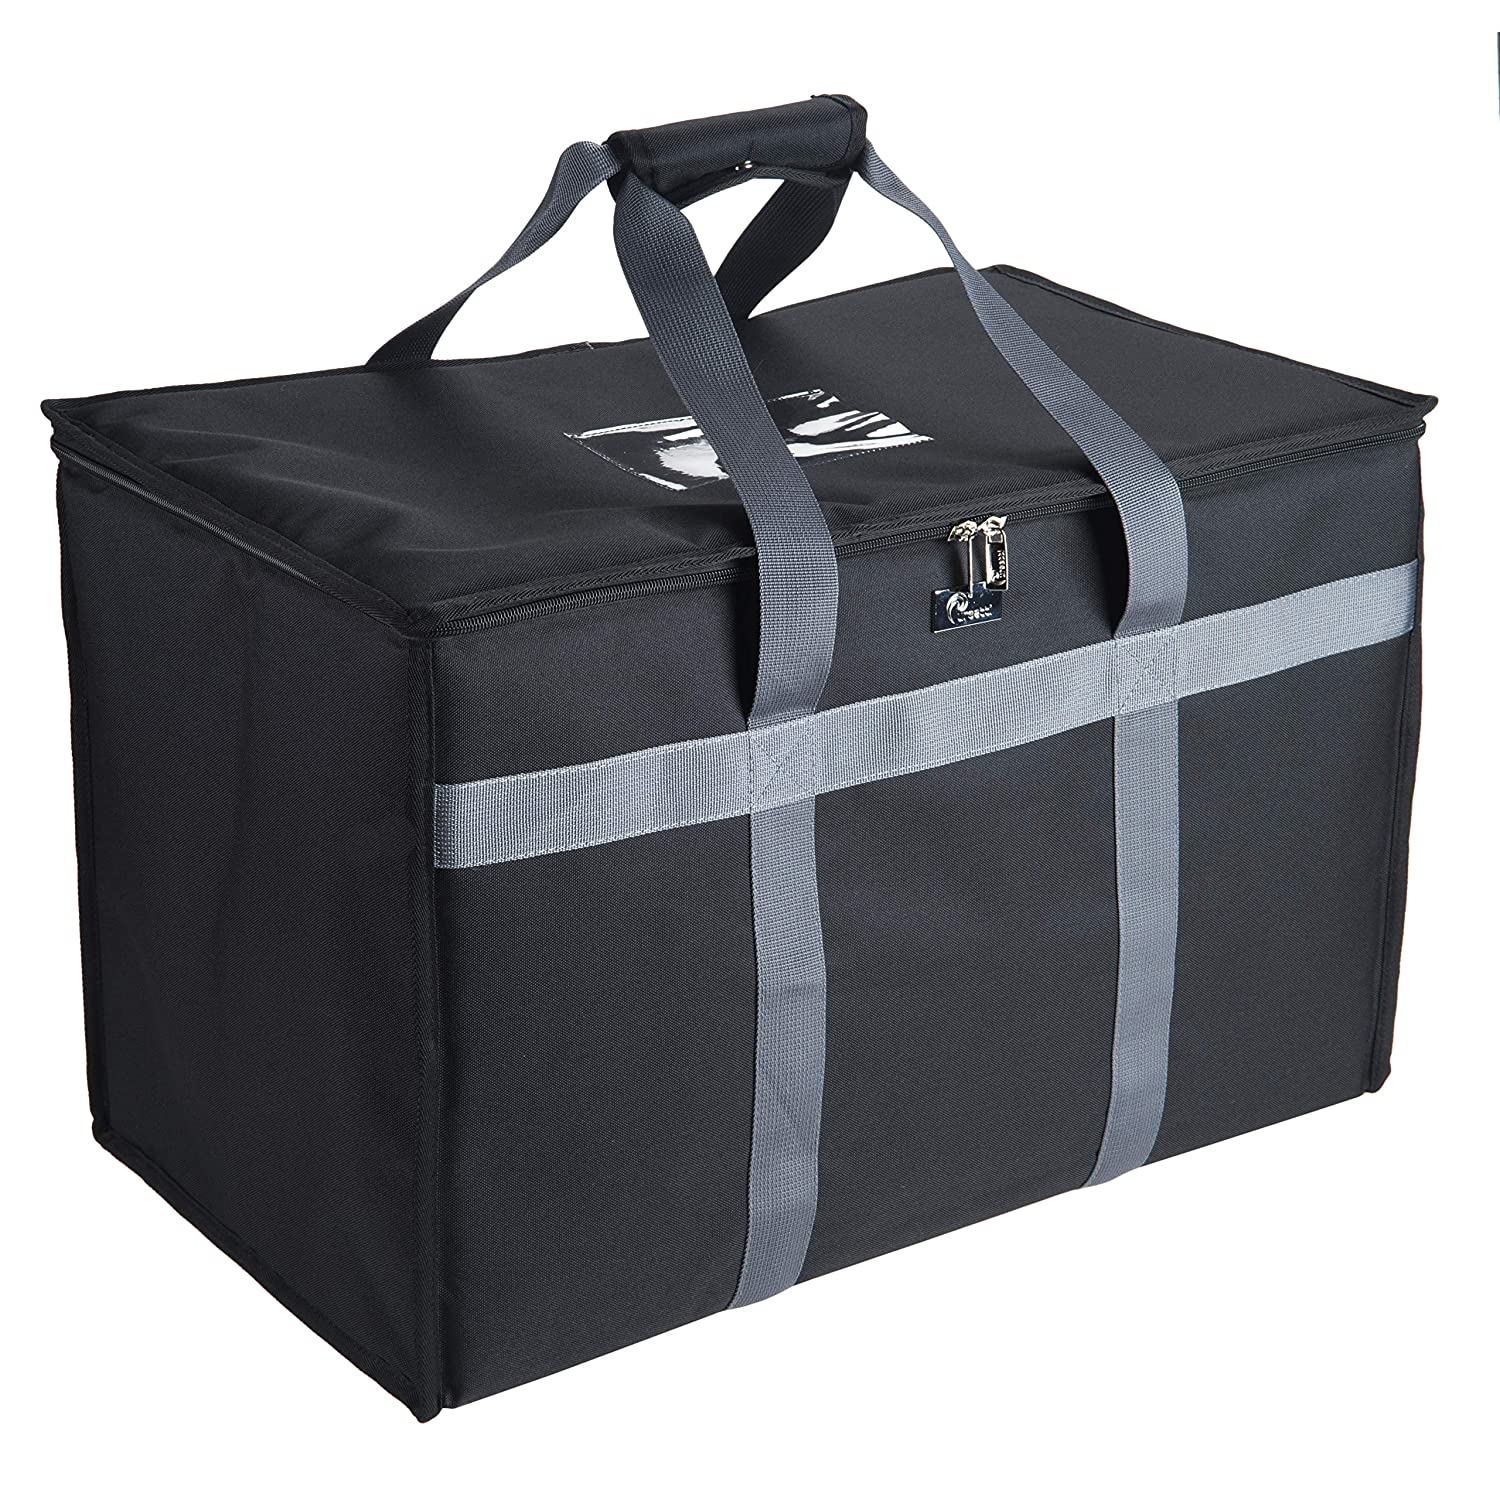 Pursetti Insulated Food Delivery Bag-Made from Premium Commercial Grade Materials to Fit 4 Full-Sized Chafing Steam Table Pans to Keep Food Hot or Cold